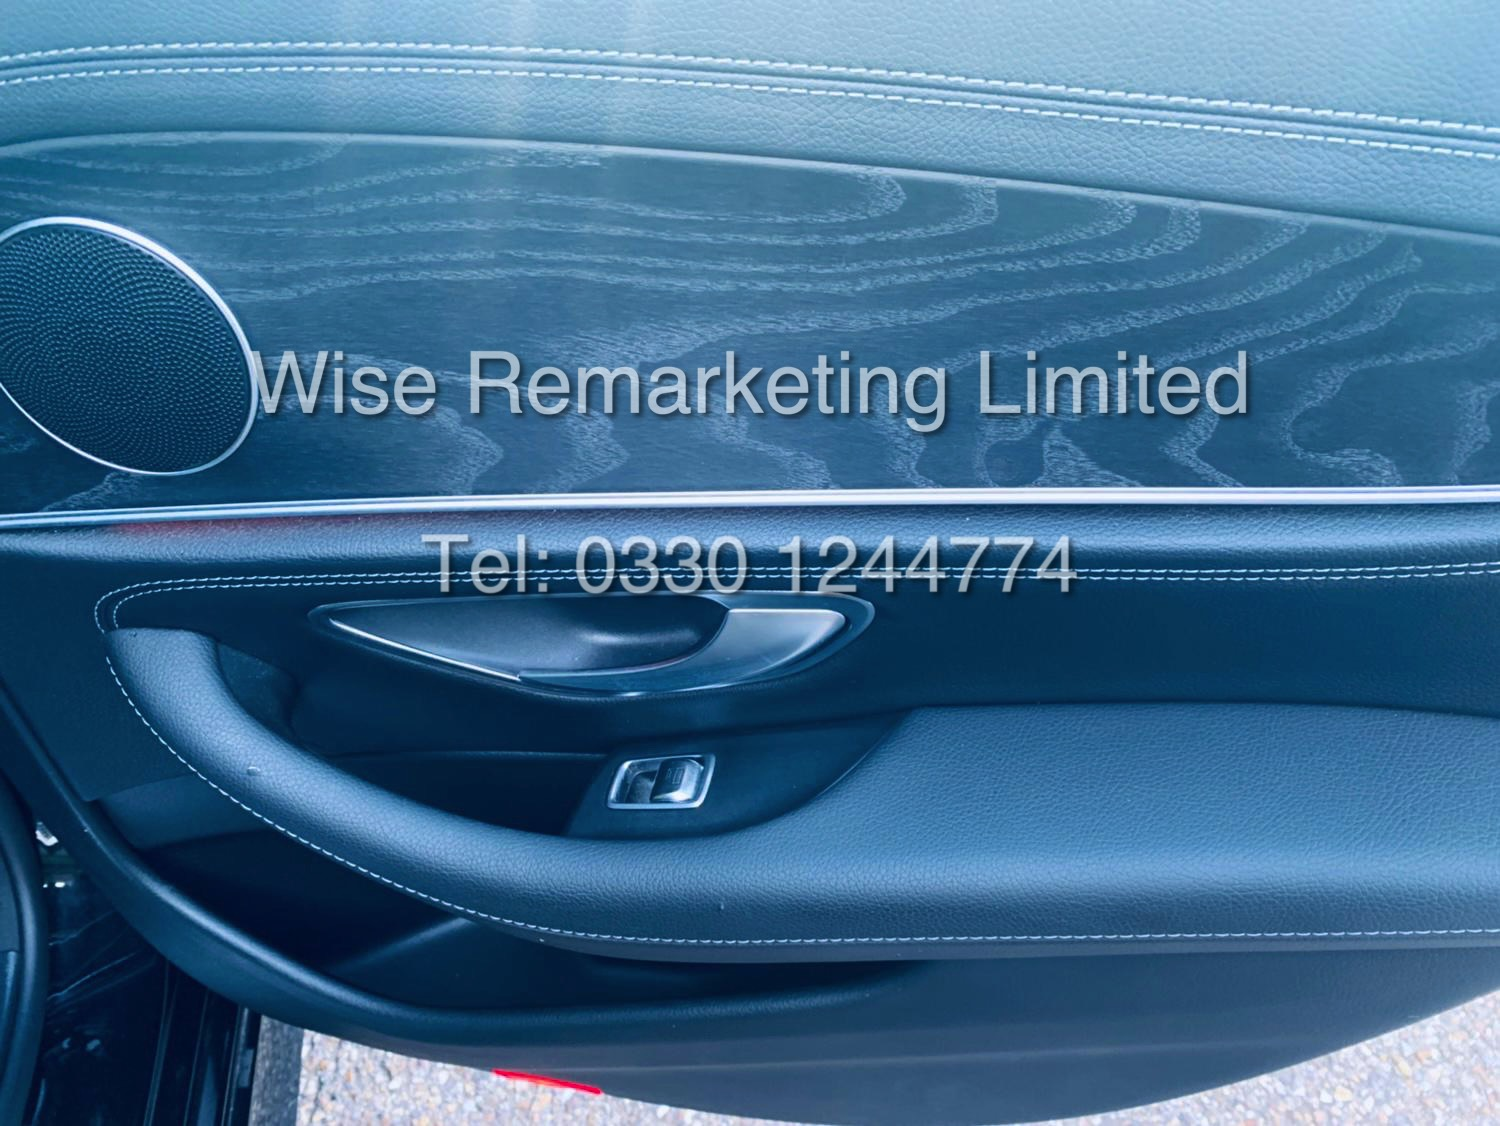 MERCEDES E CLASS ESTATE E220D AMG LINE 2017 / 9G -TRONIC / *LOW MILES* / 1 OWNER - Image 19 of 42